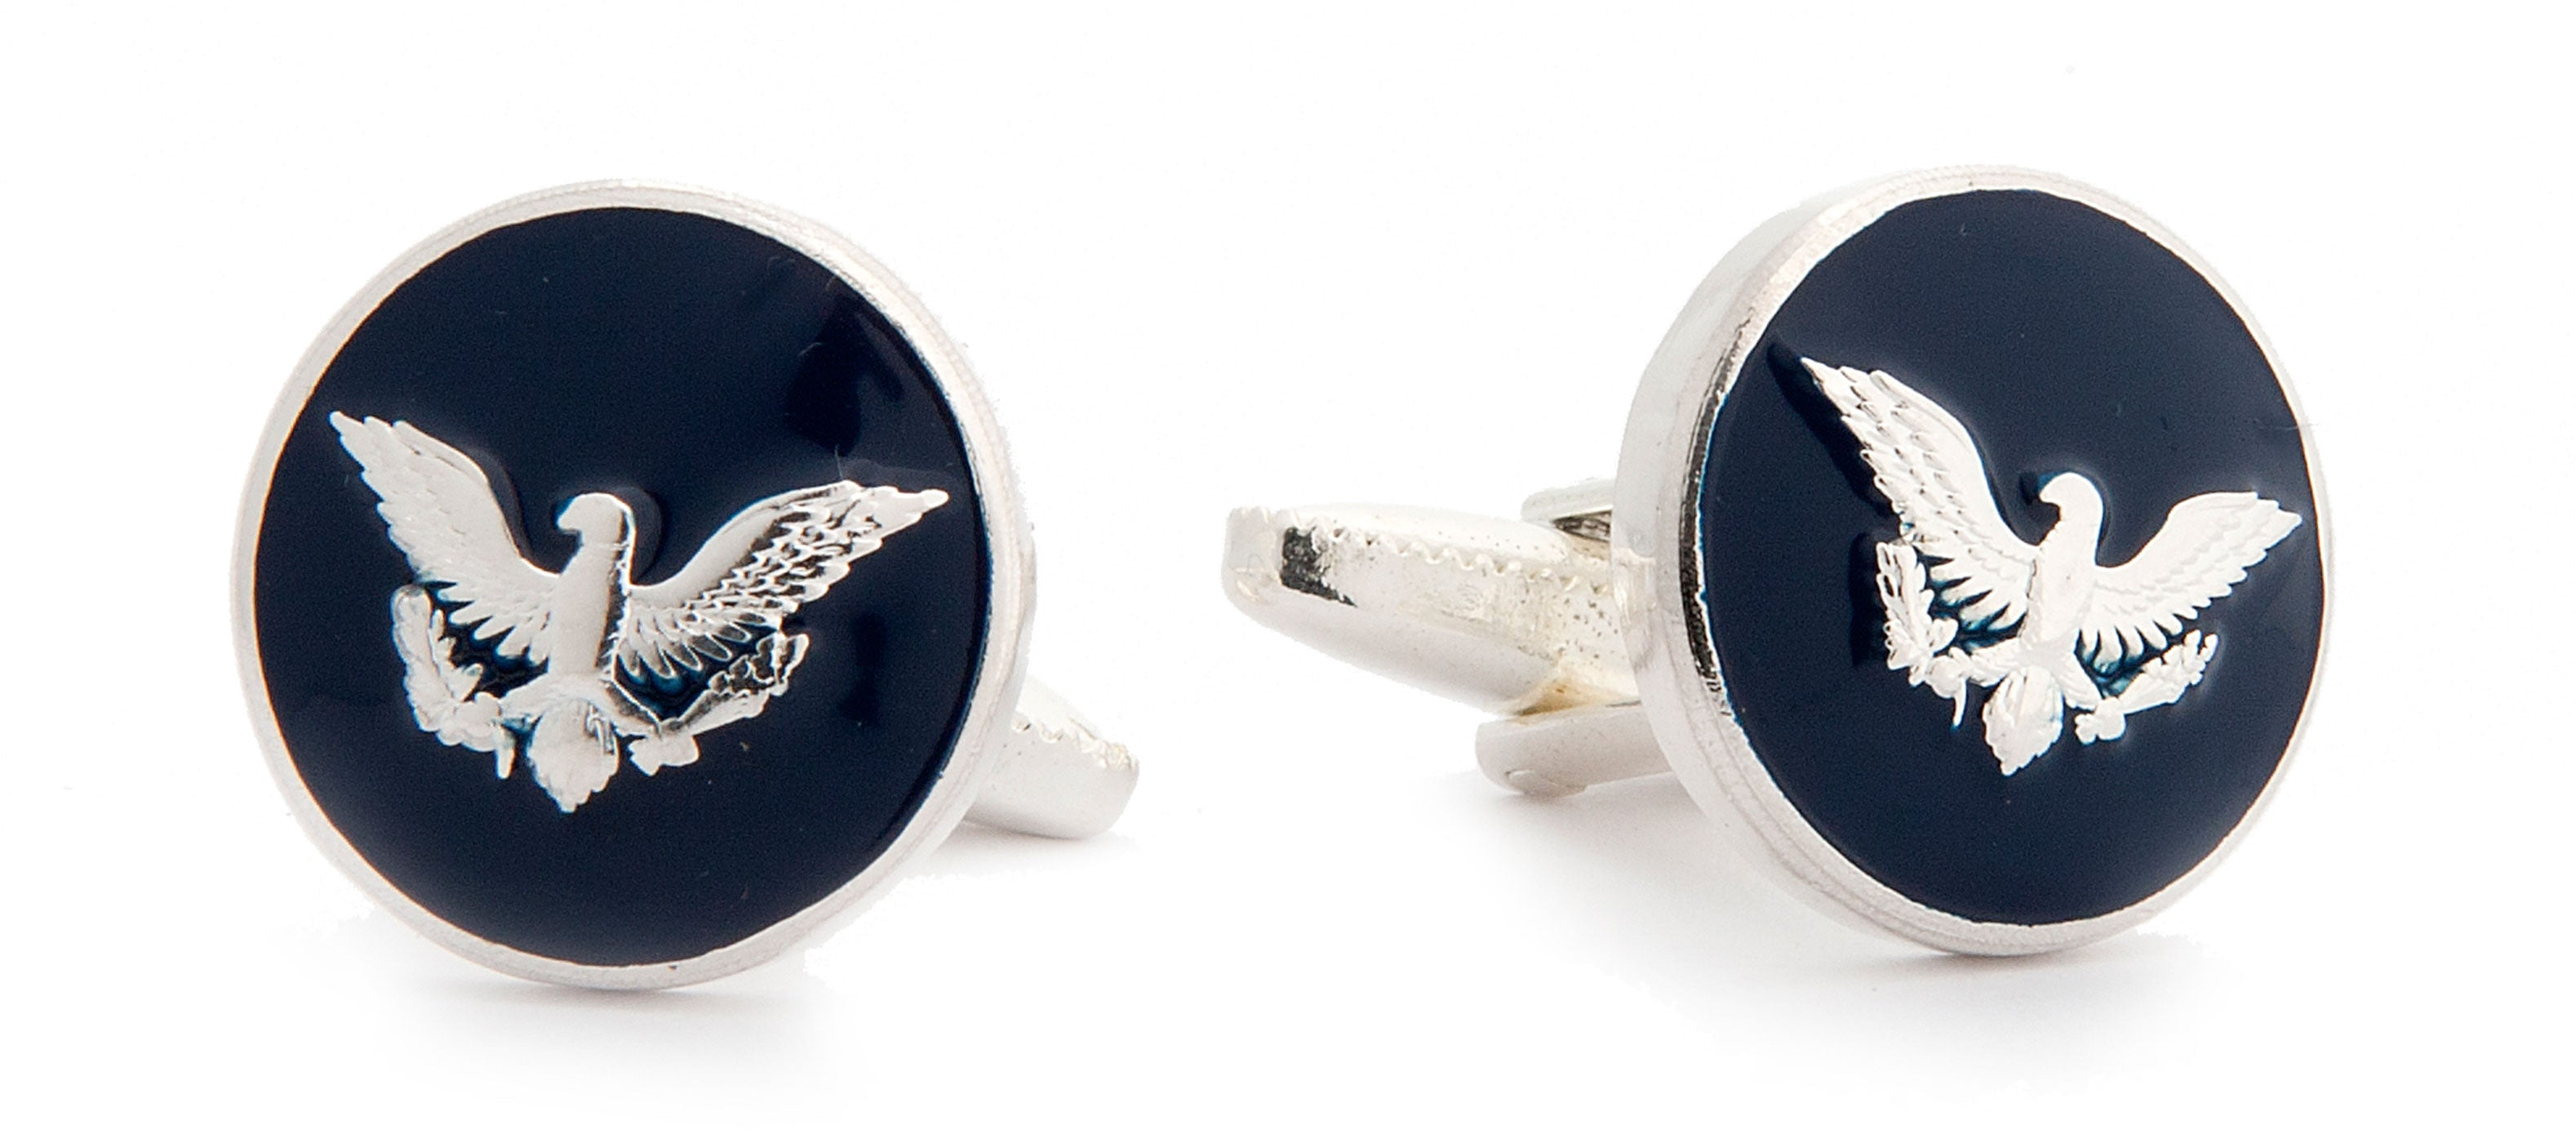 Wimbledon Cufflink Co Reveals Bold New Cufflink and Watch Designs